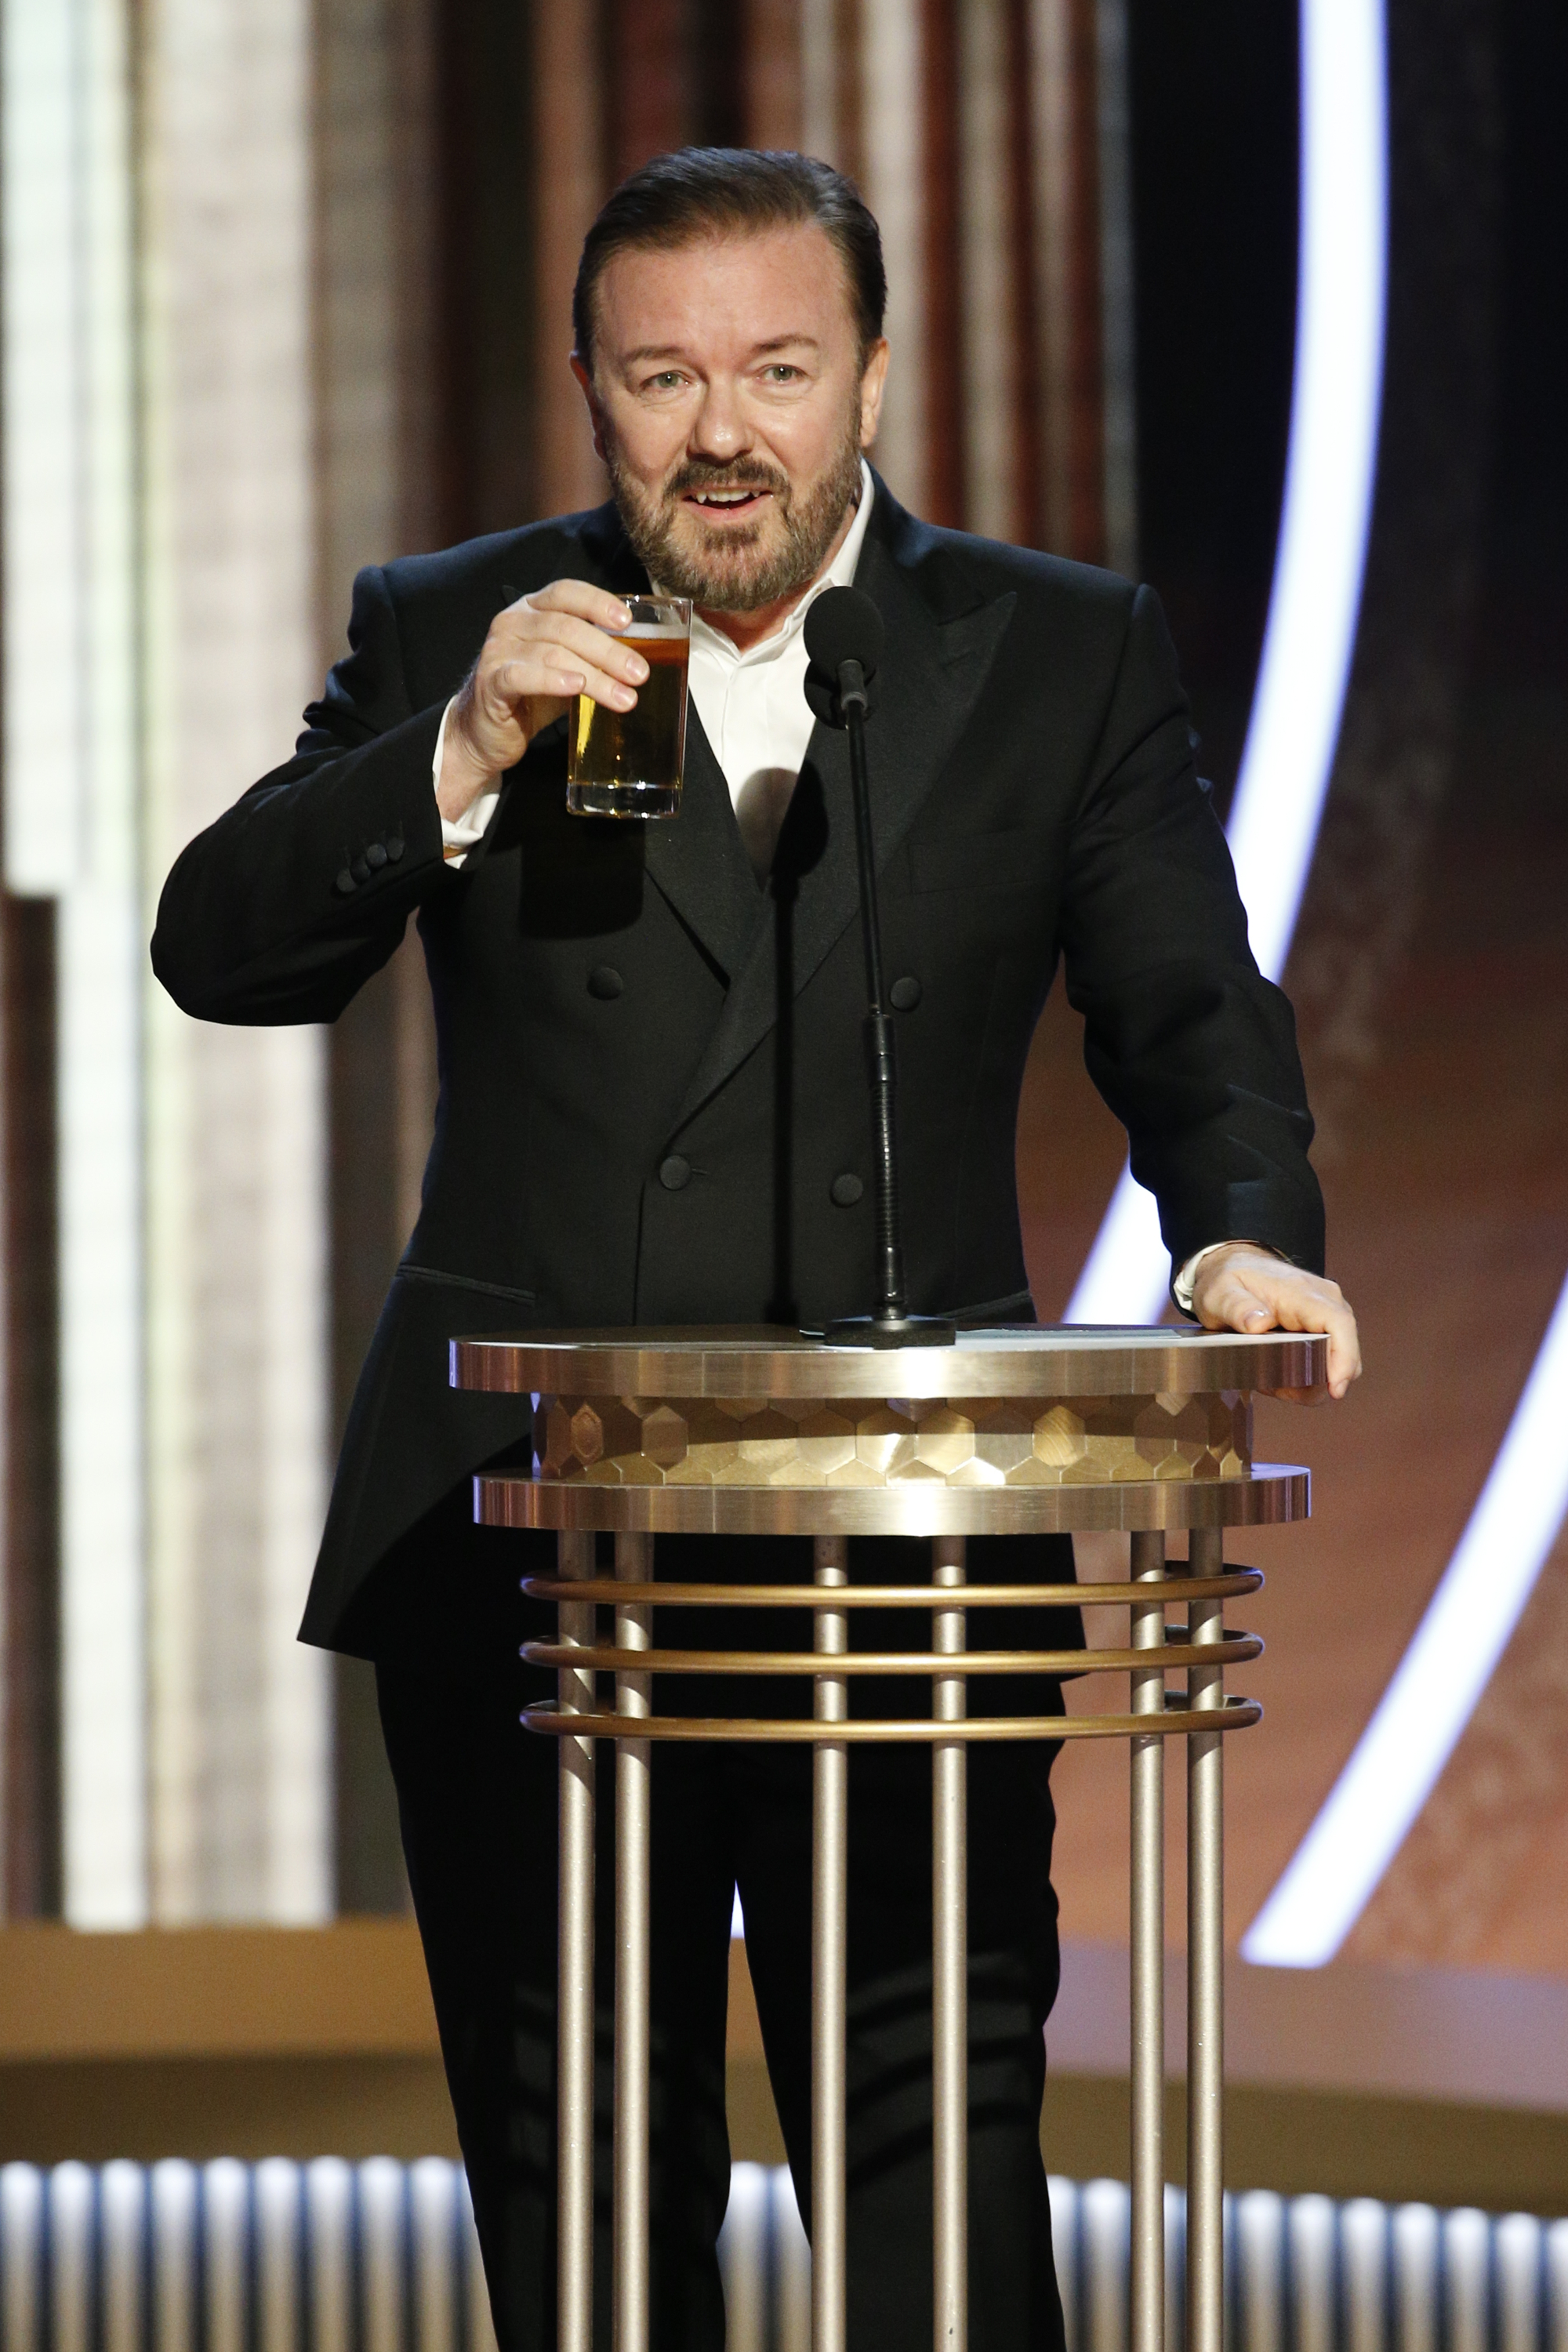 Ricky Gervais at the 2020 Golden Globes.